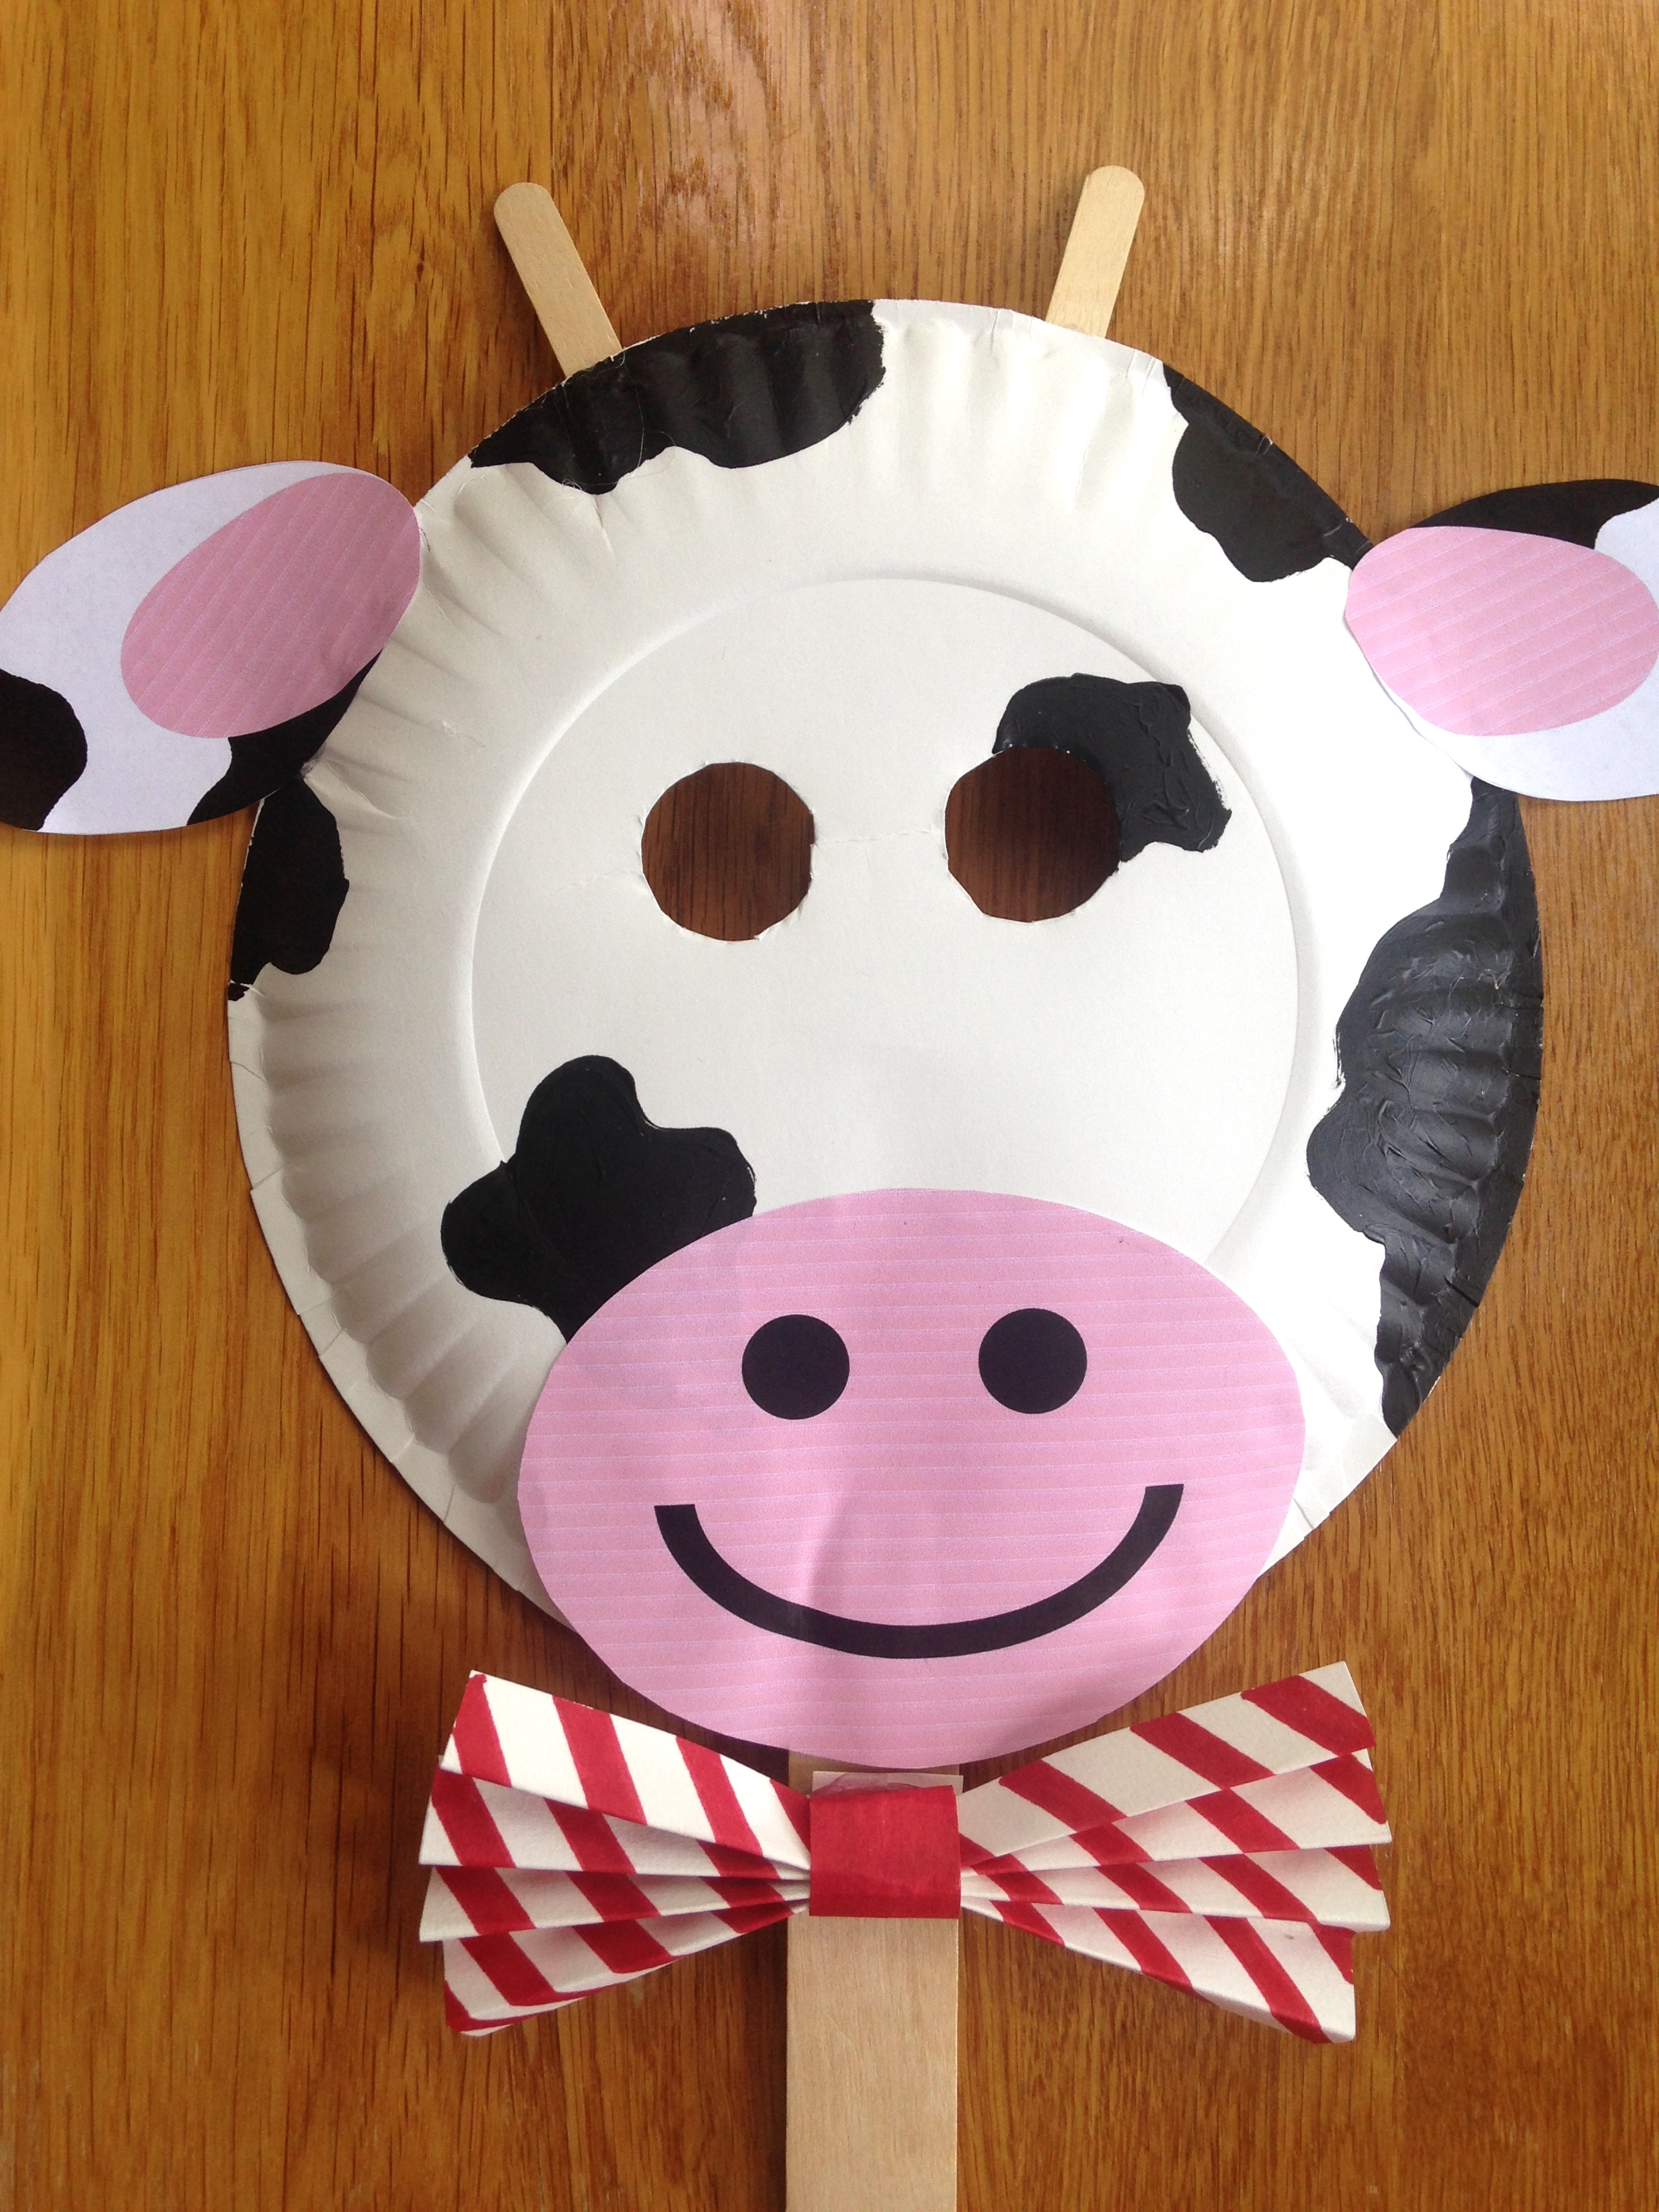 photo relating to Chick Fil a Cow Appreciation Day Printable called Chick-fil-A Cow Working day Paper Plate Cow Masks With Cost-free